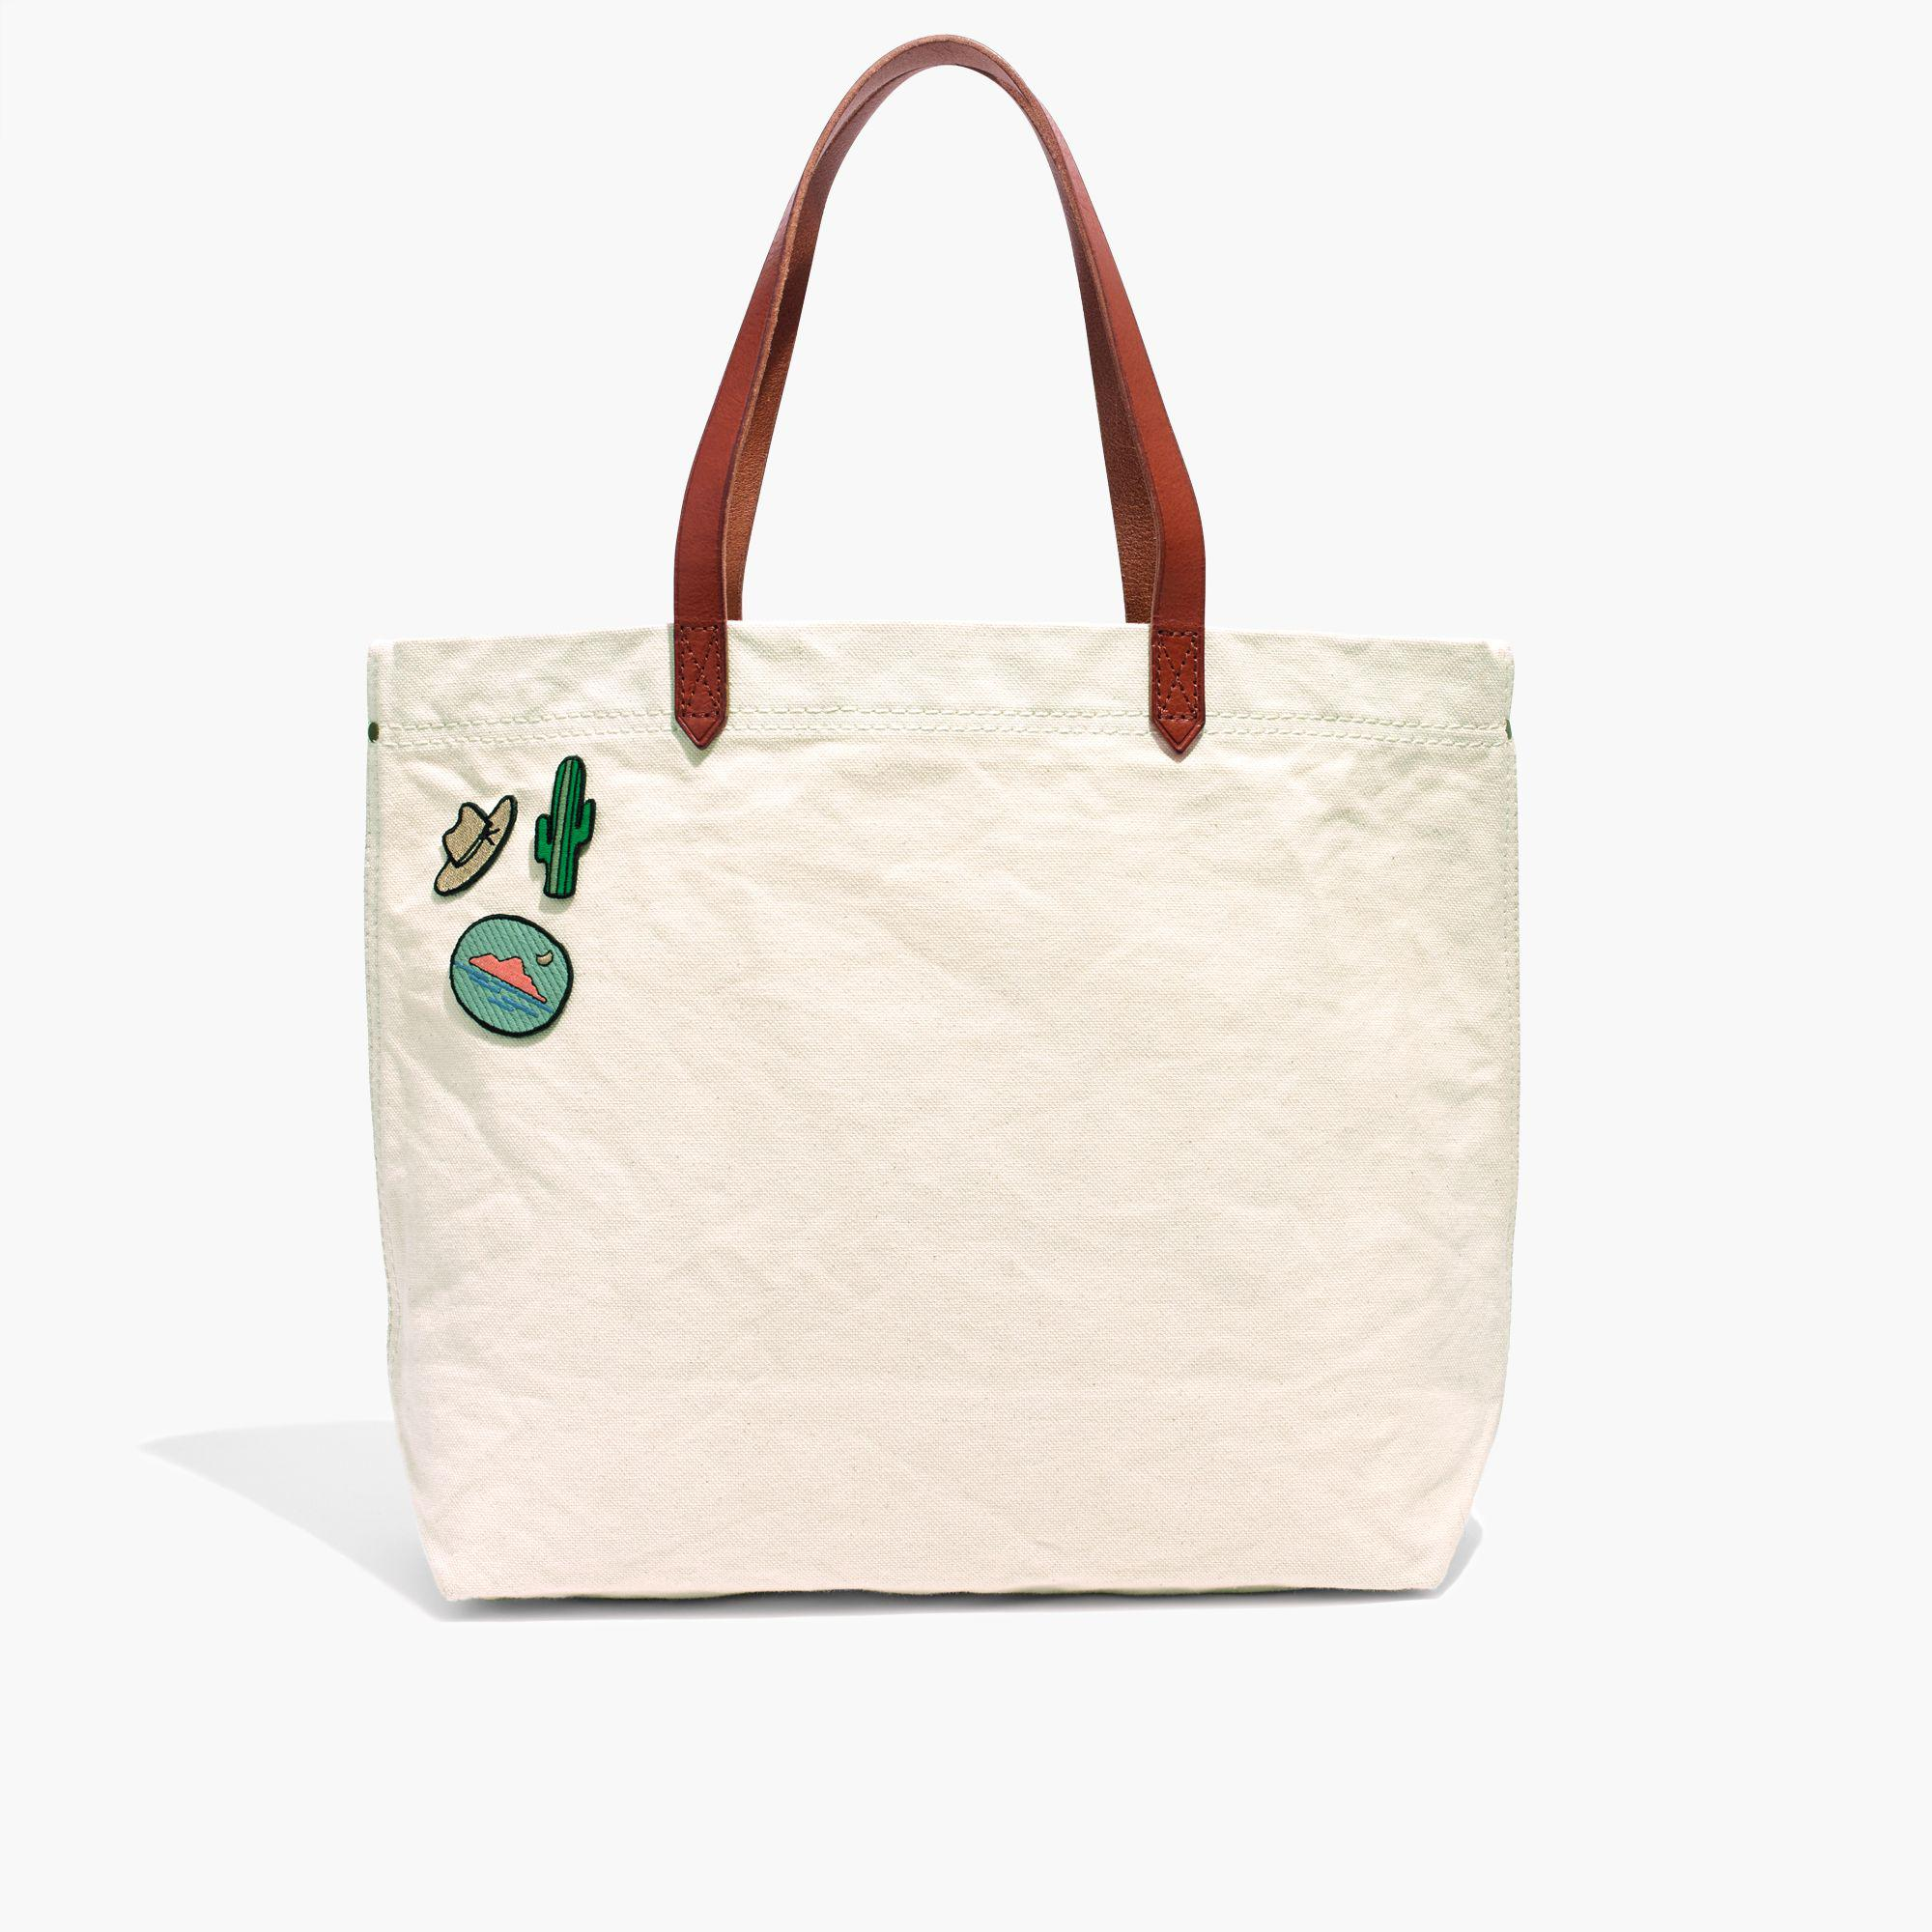 Lyst - Madewell The Canvas Transport Tote in White 3957f02813f1f